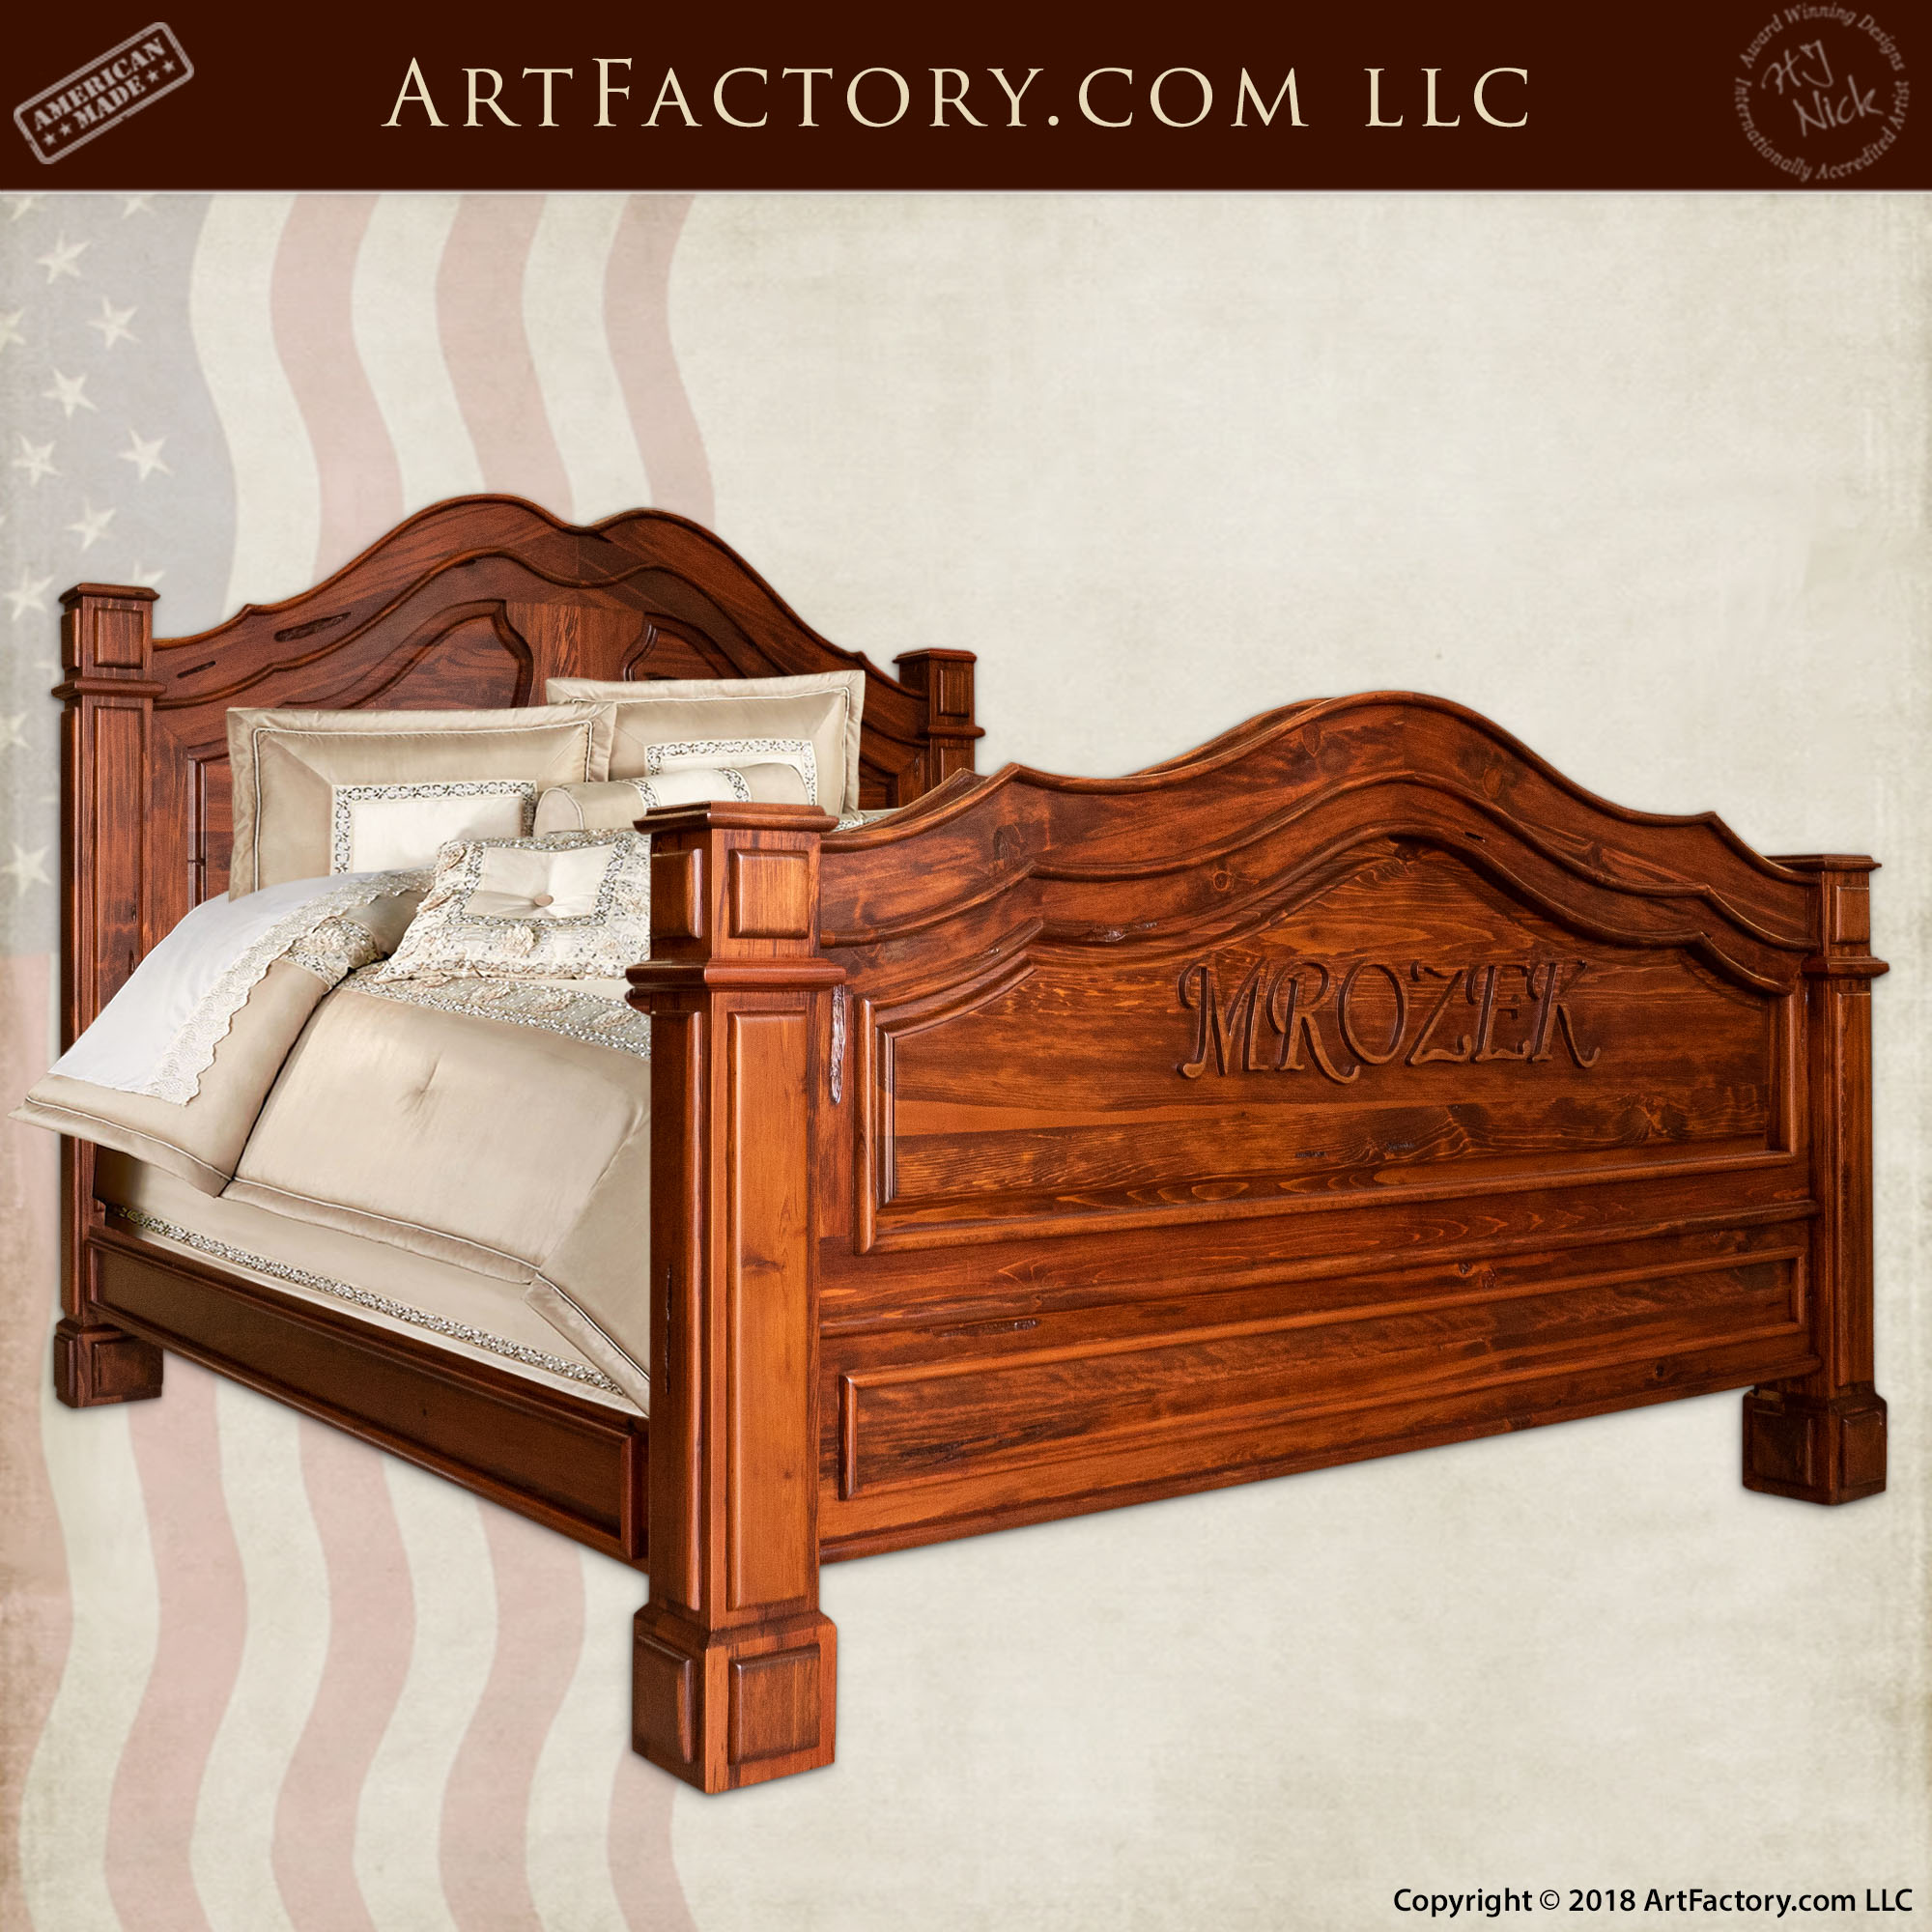 Hand Carved Personalized Bed